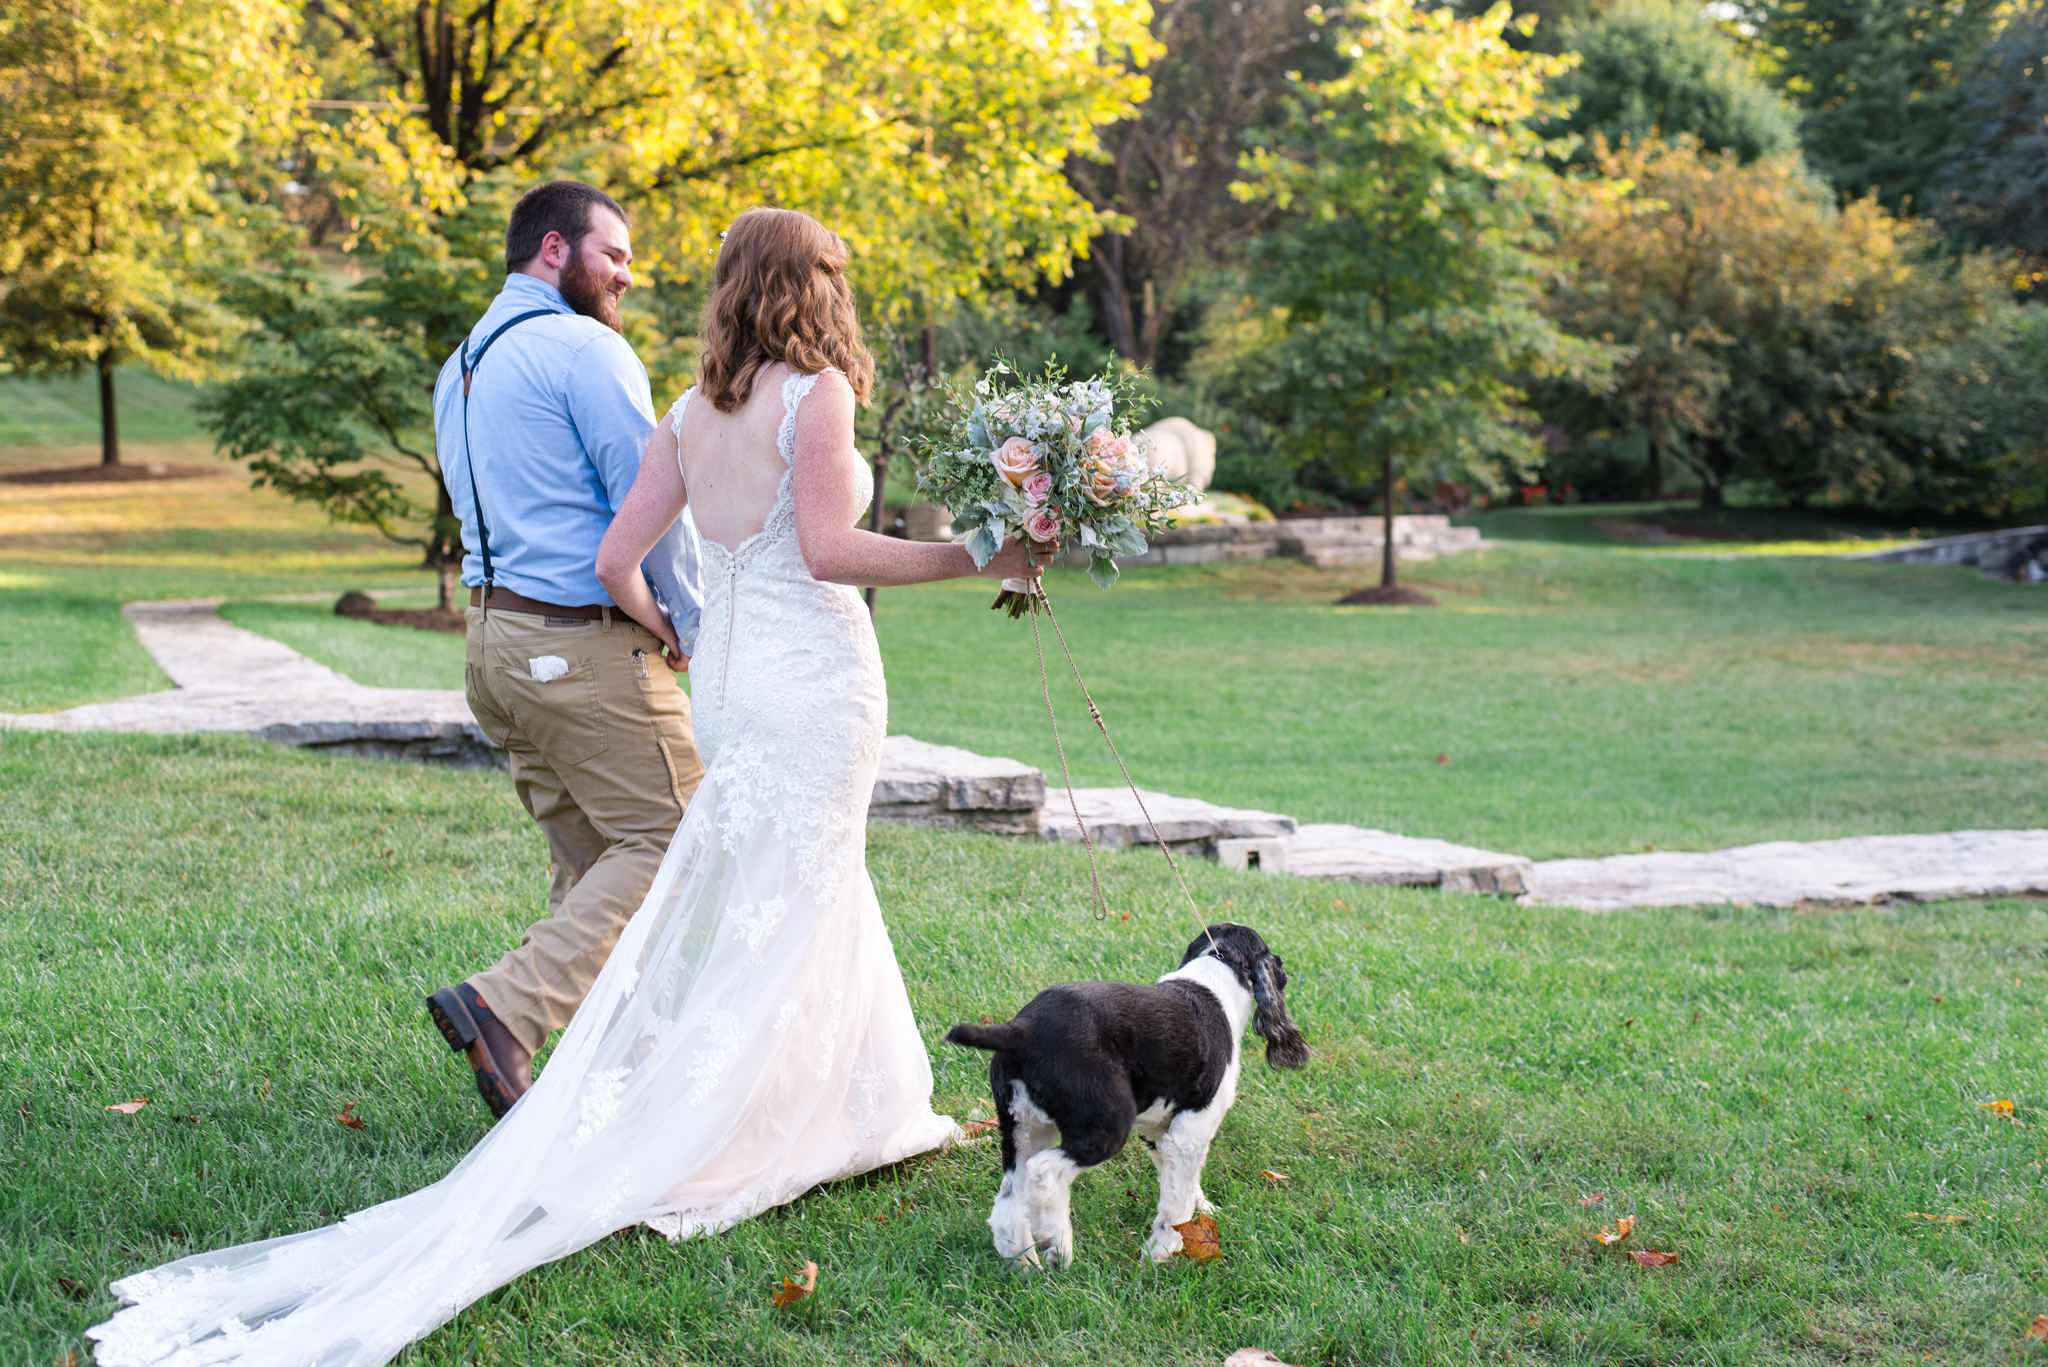 bride, groom, and their dog